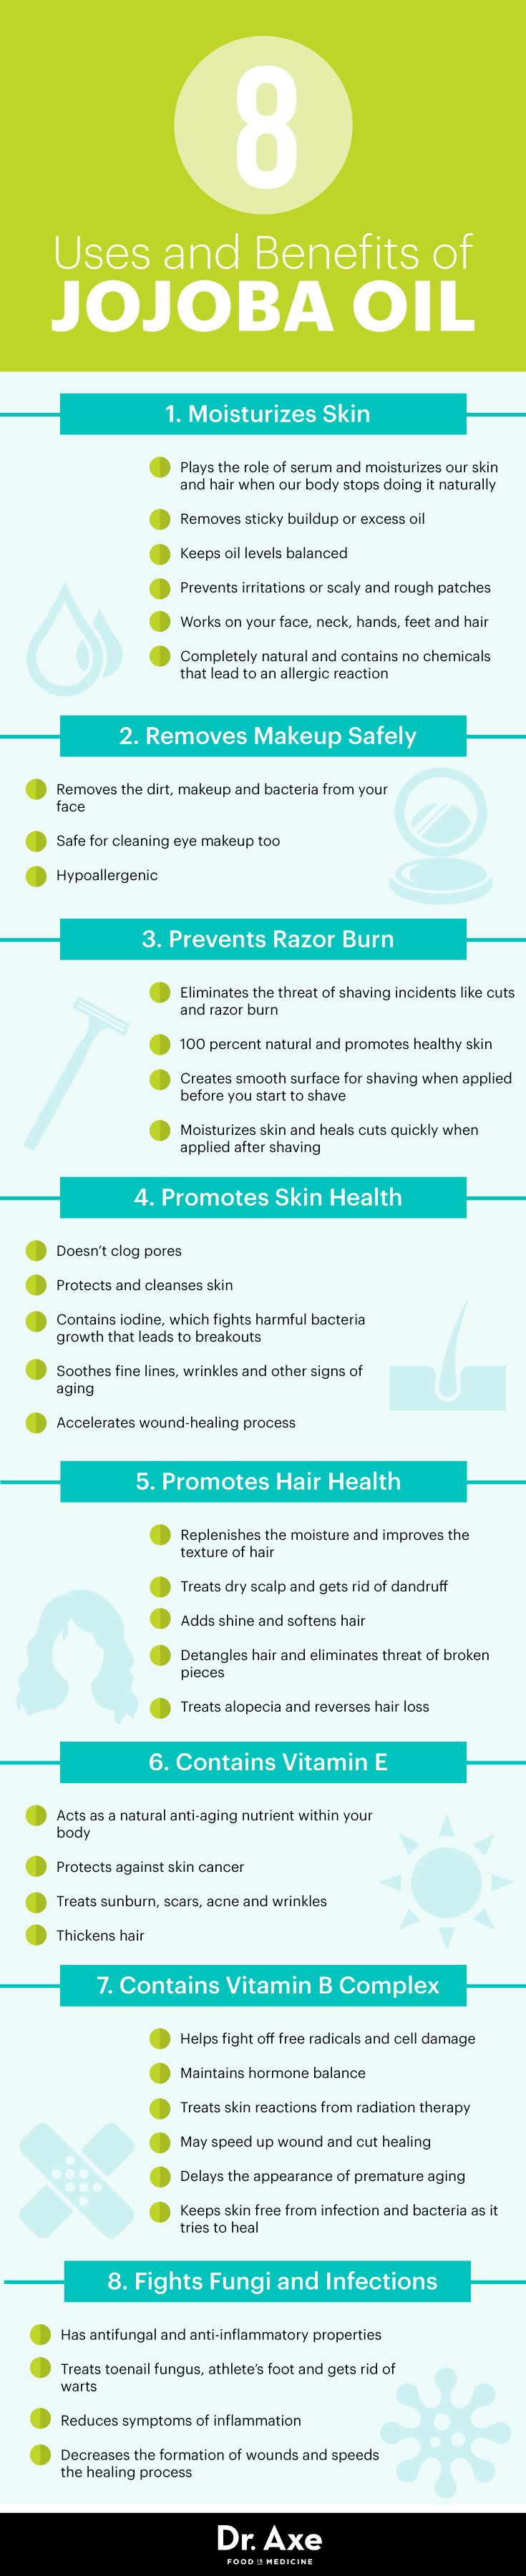 Jojoba oil infographic - Dr. axe http://www.draxe.com #health #holistic #natural